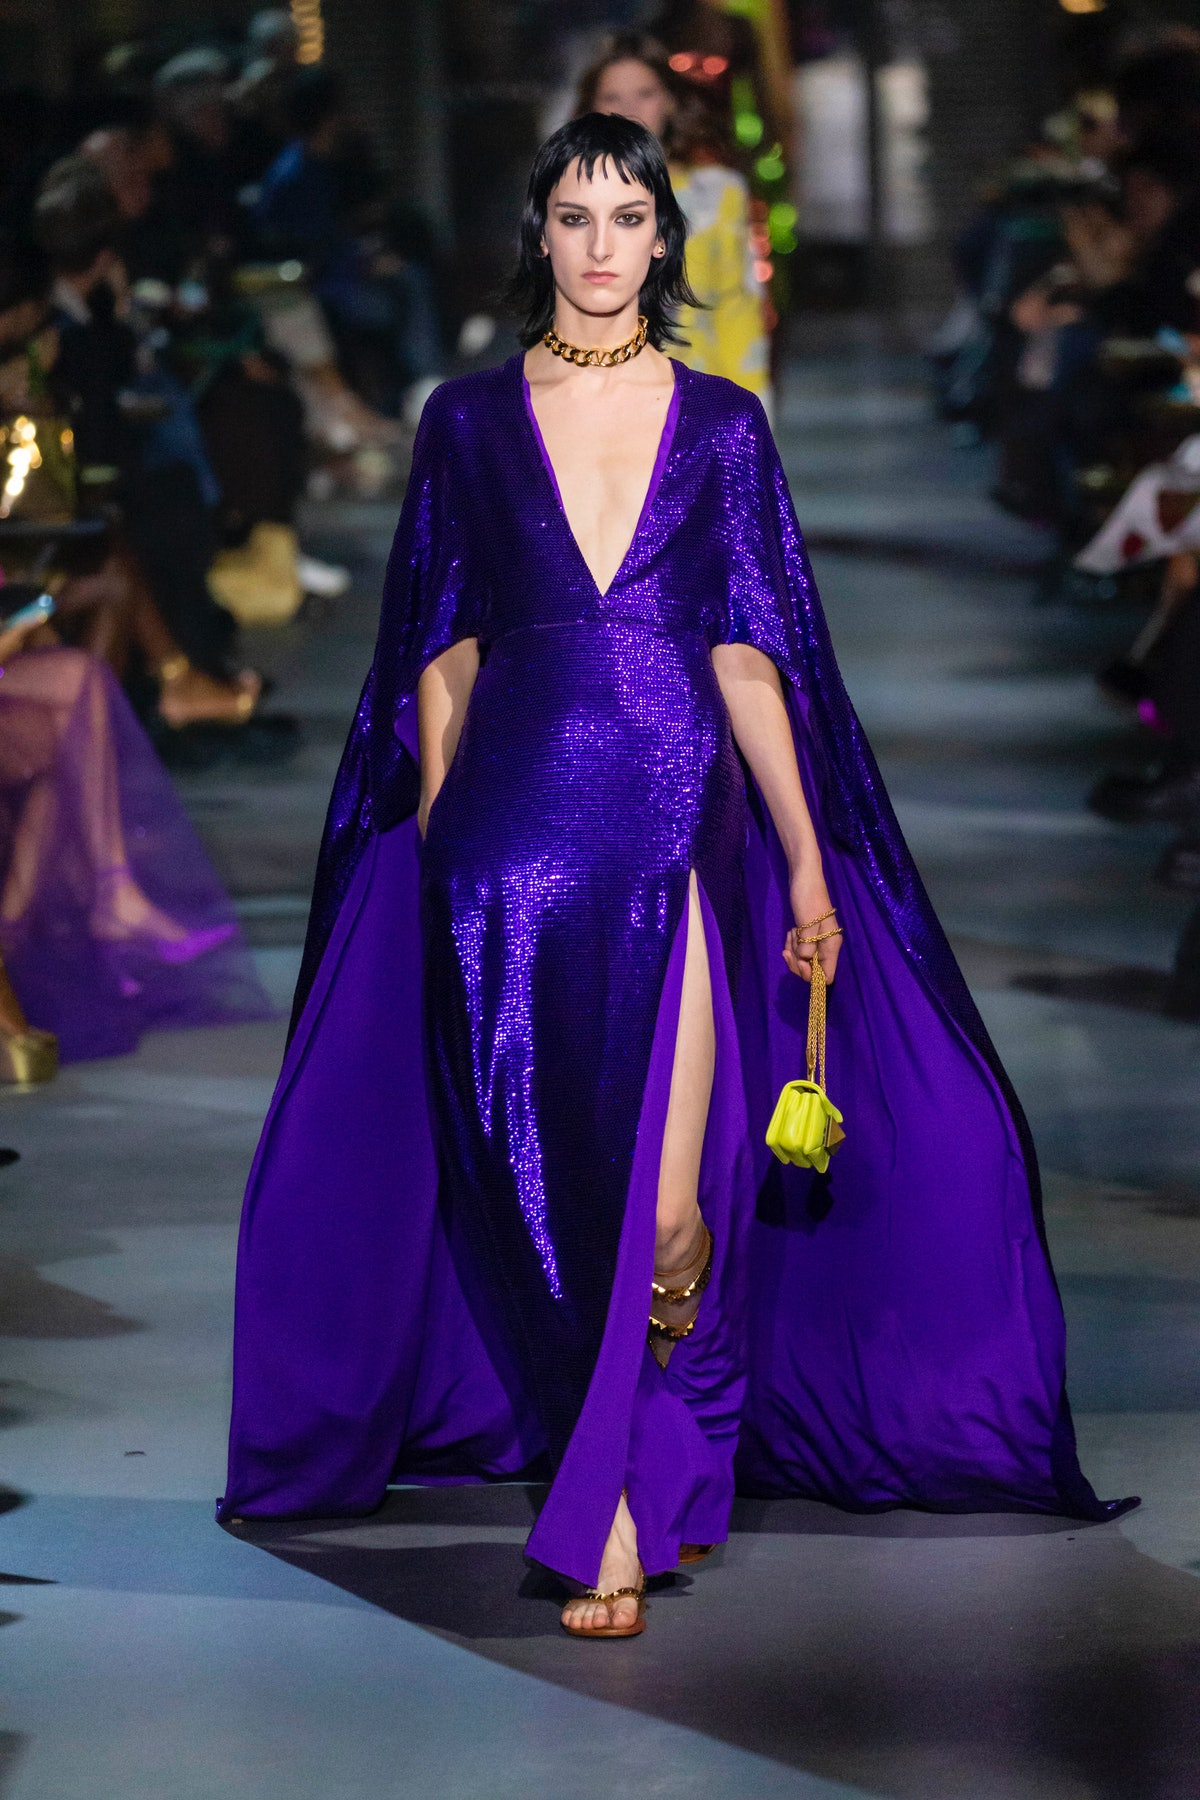 PARIS, FRANCE - OCTOBER 01: A model walks the runway during the Valentino Ready to Wear Spring/Summe...